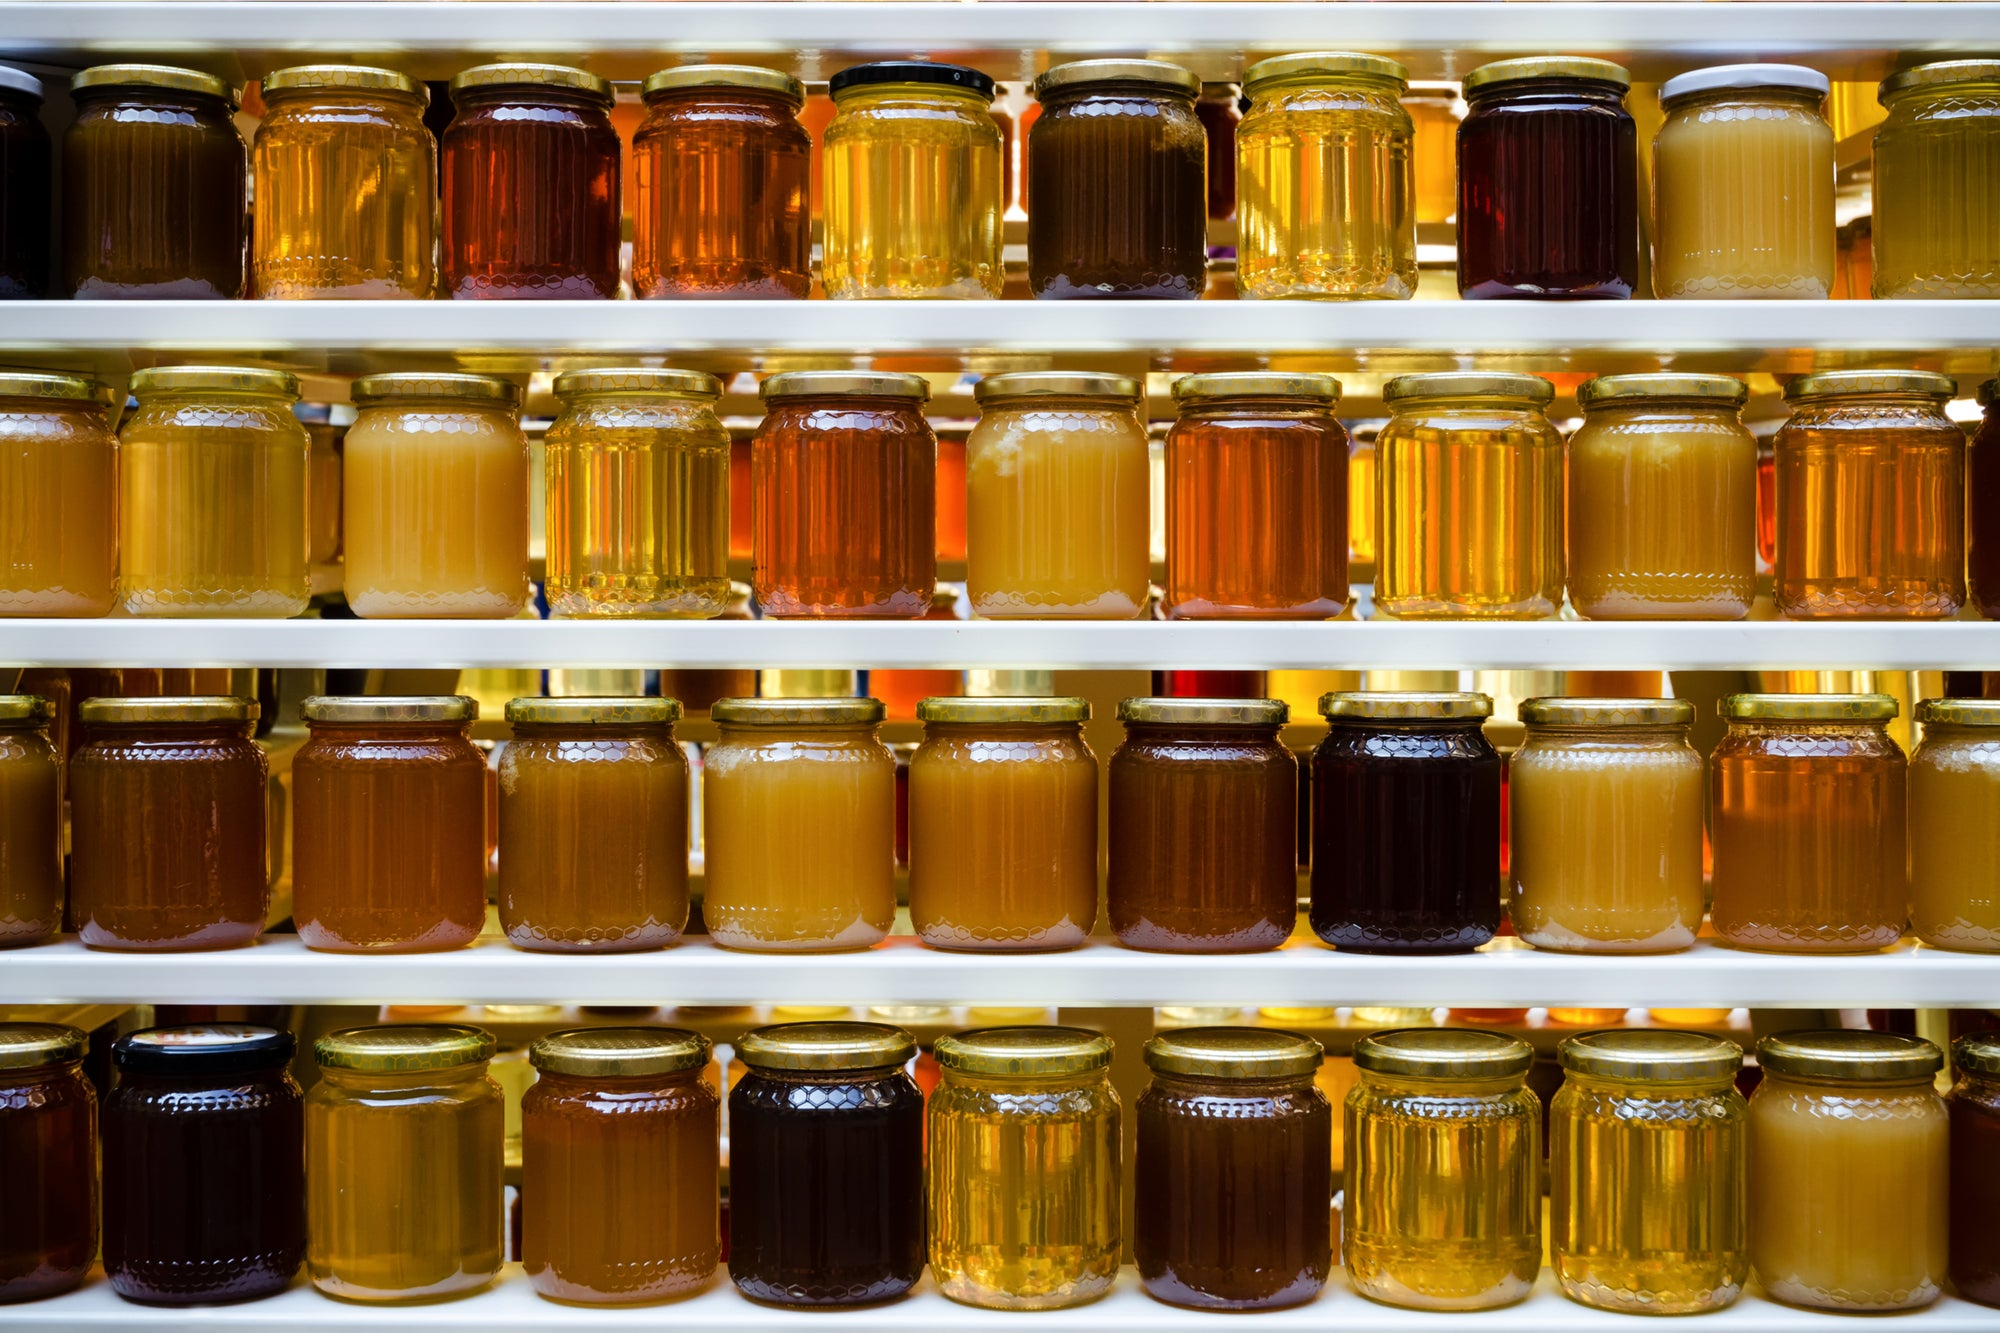 Jars of crystallised and runny honey on shelves